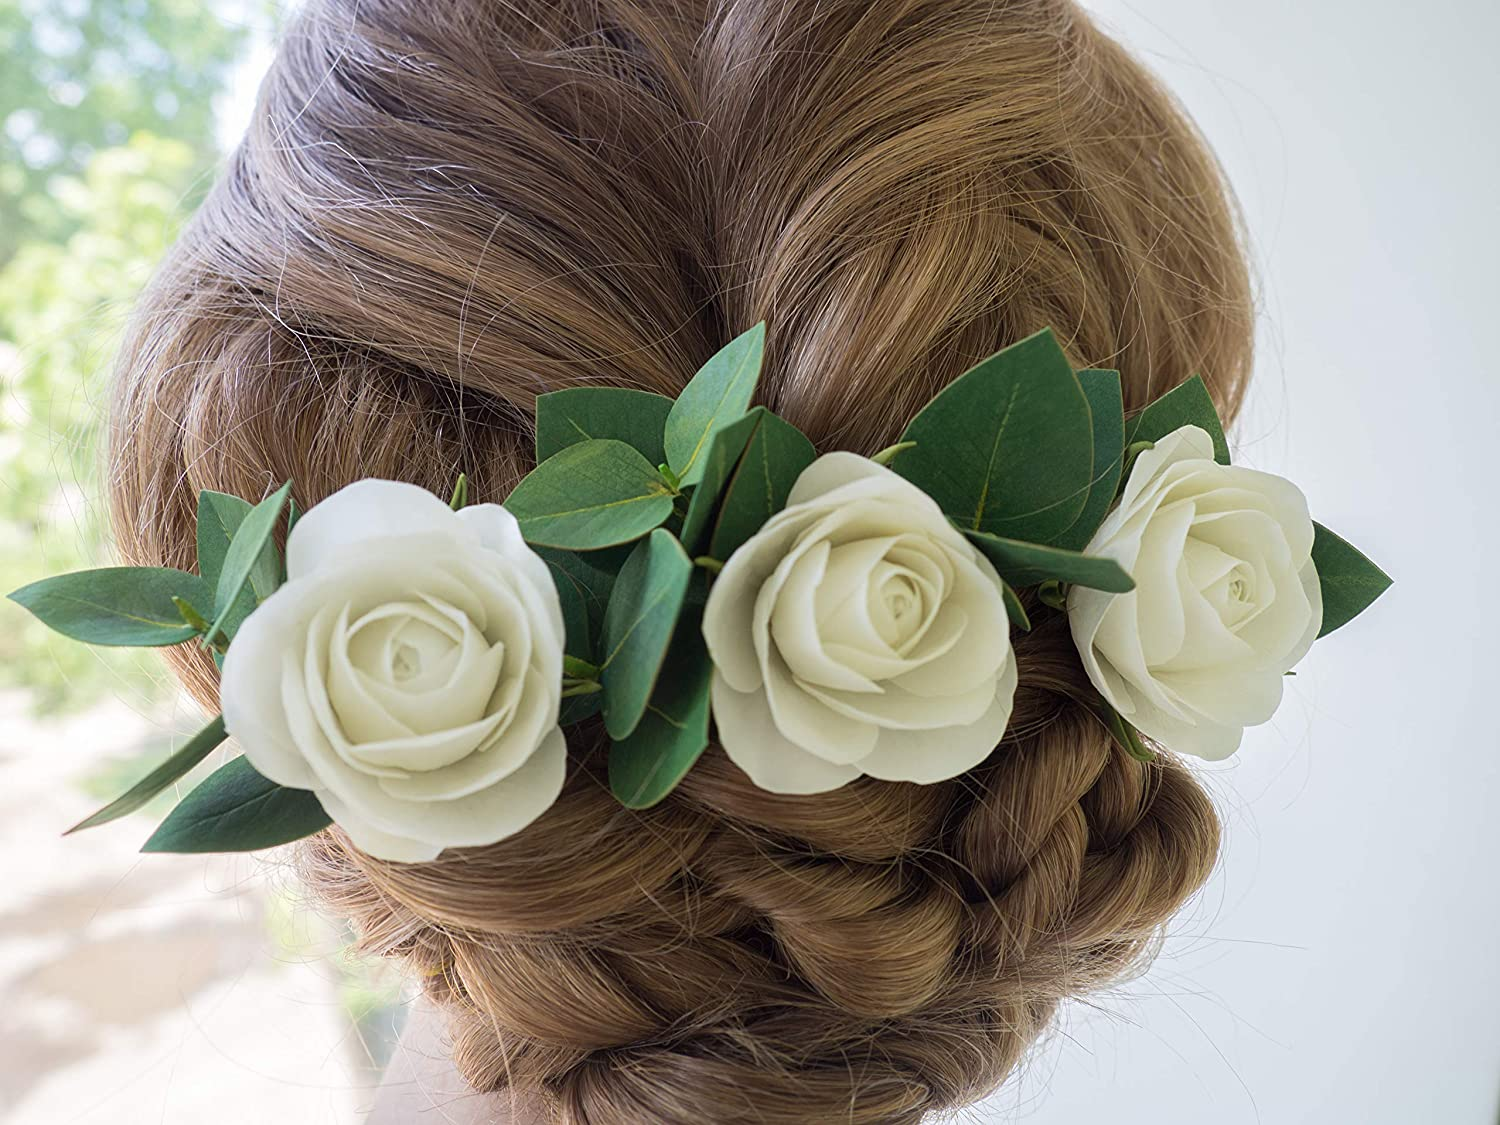 Floral Set of 5 Hair Pins with Eucalyptus Leaves and White Rose Hair Pins Greenery Hair Piece